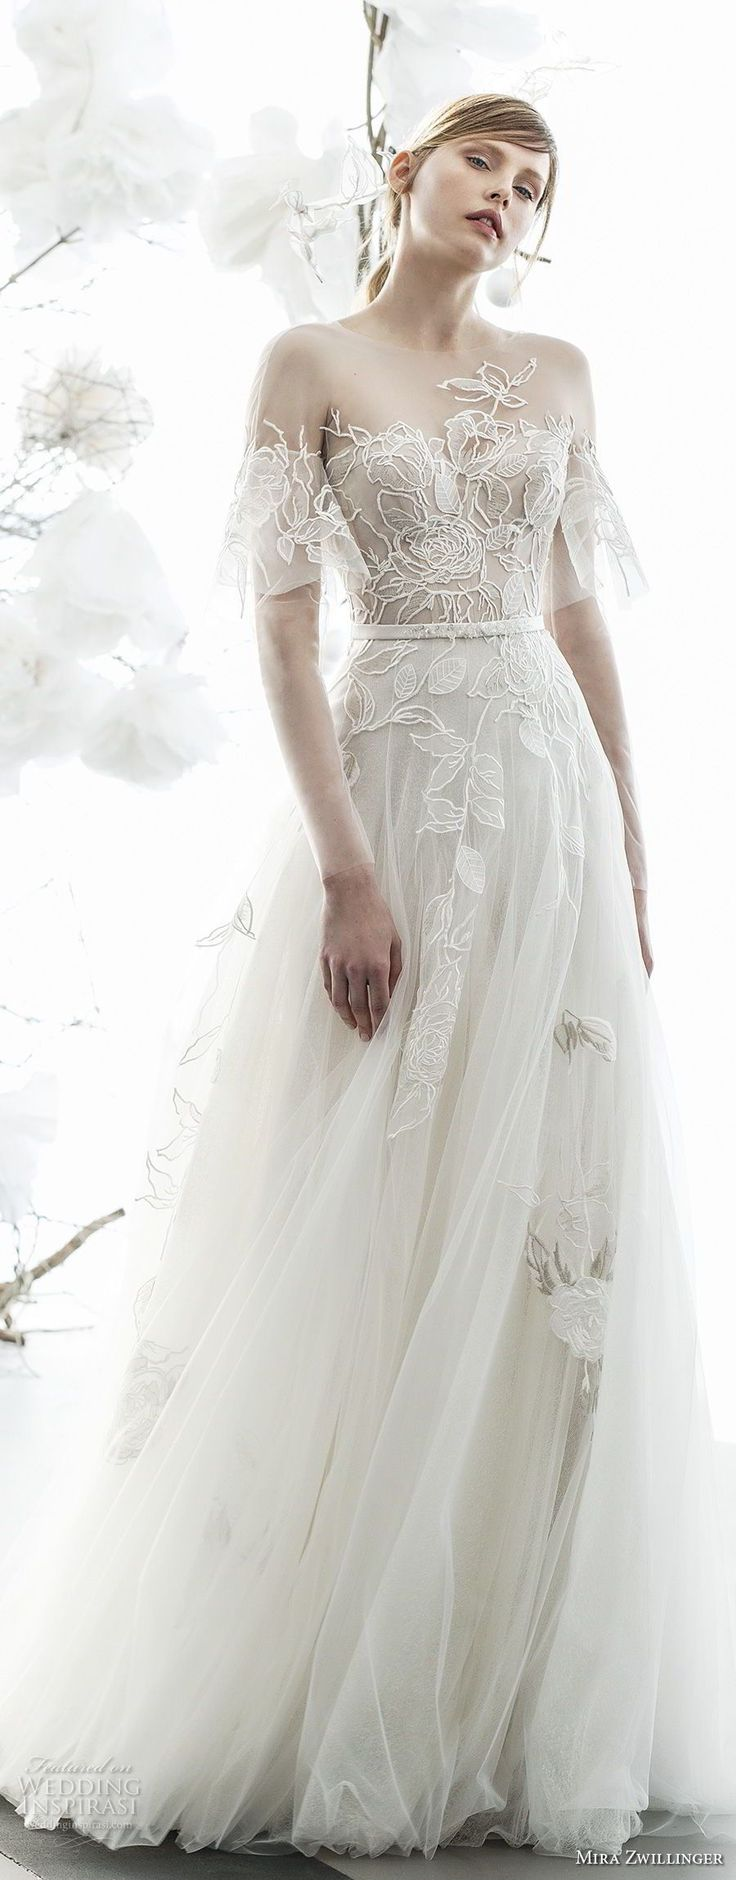 Best 25 illusions ideas on pinterest awesome illusions for Illusion sweetheart neckline wedding dress